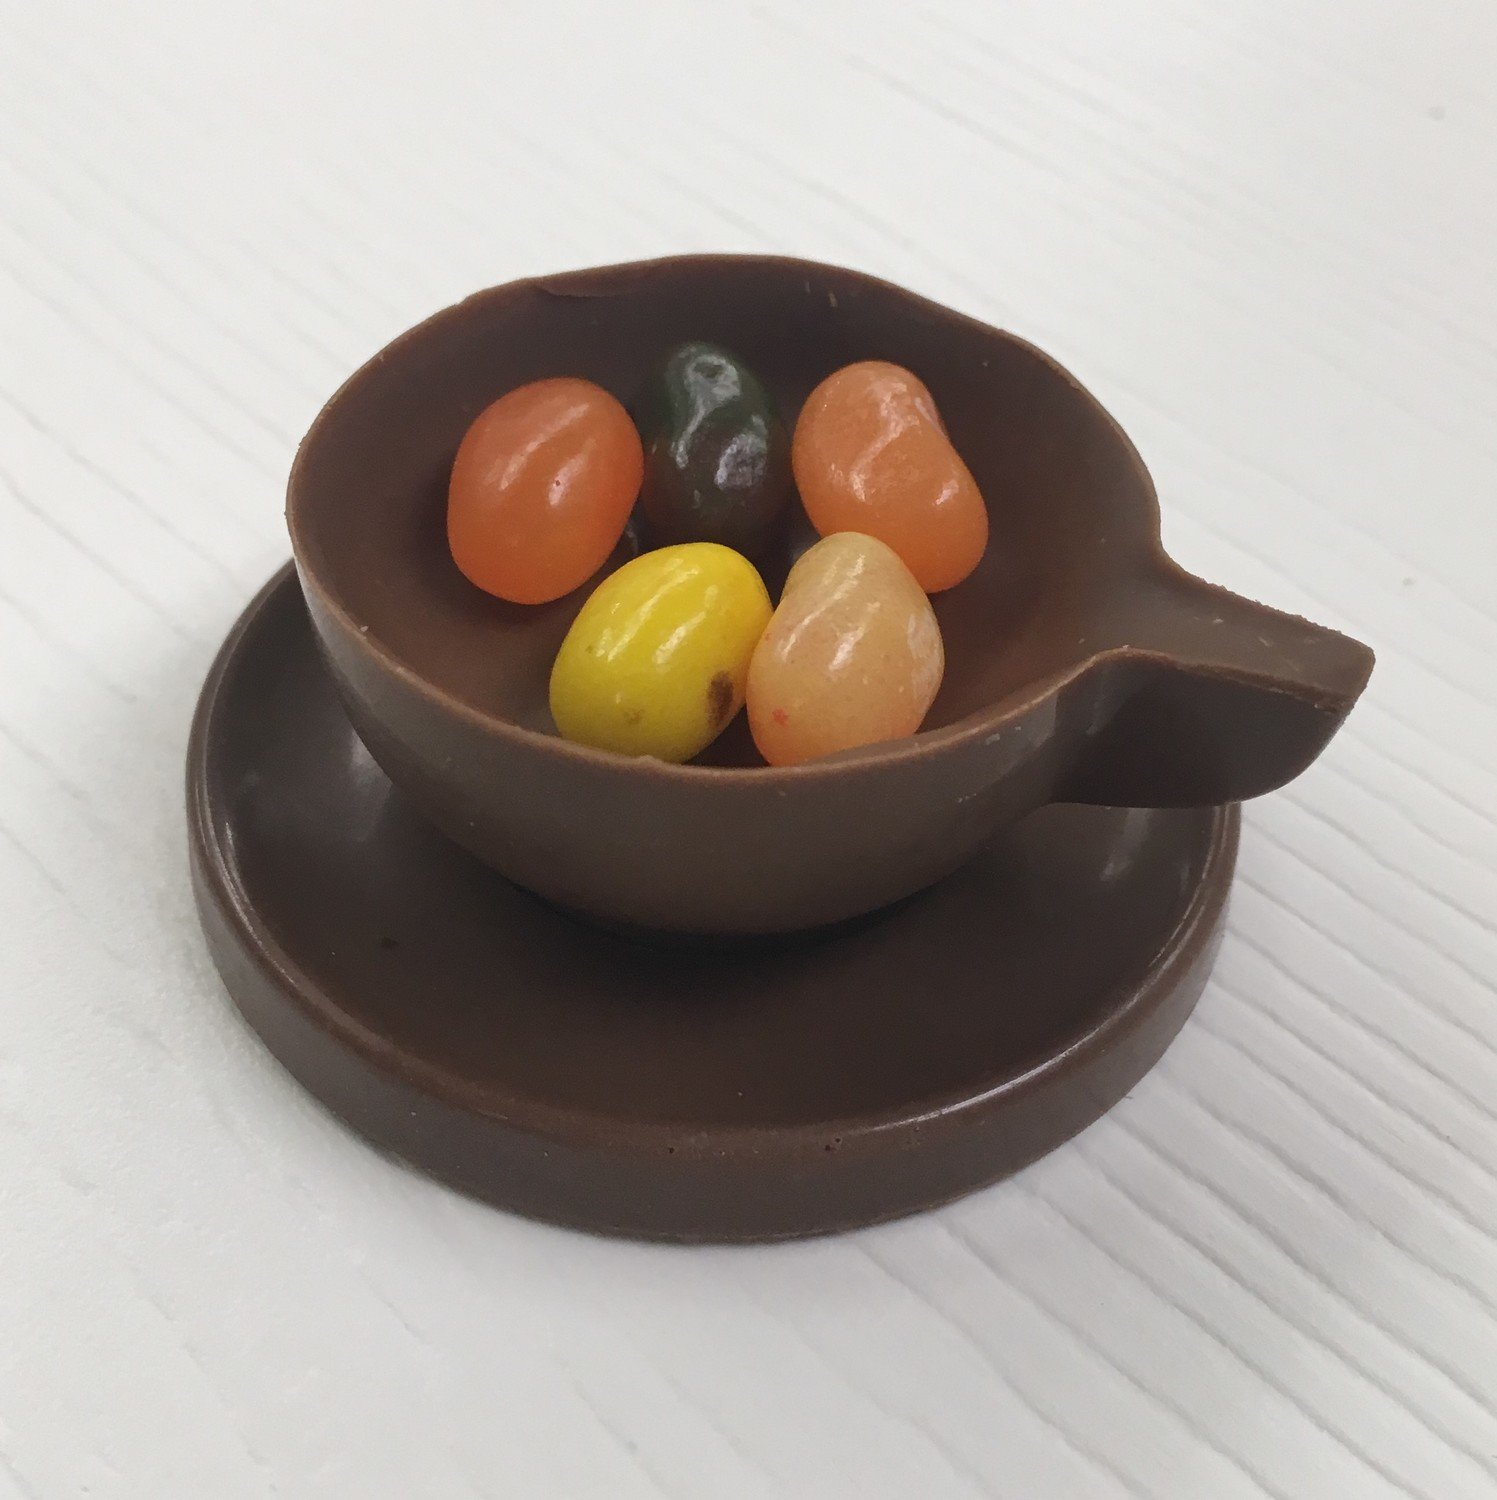 Set of 4 Expresso Cups.  Chocolate Expresso/Tea Cup.  Peanut & Gluten Free (jelly beans not included). 10 day pre orders over 50